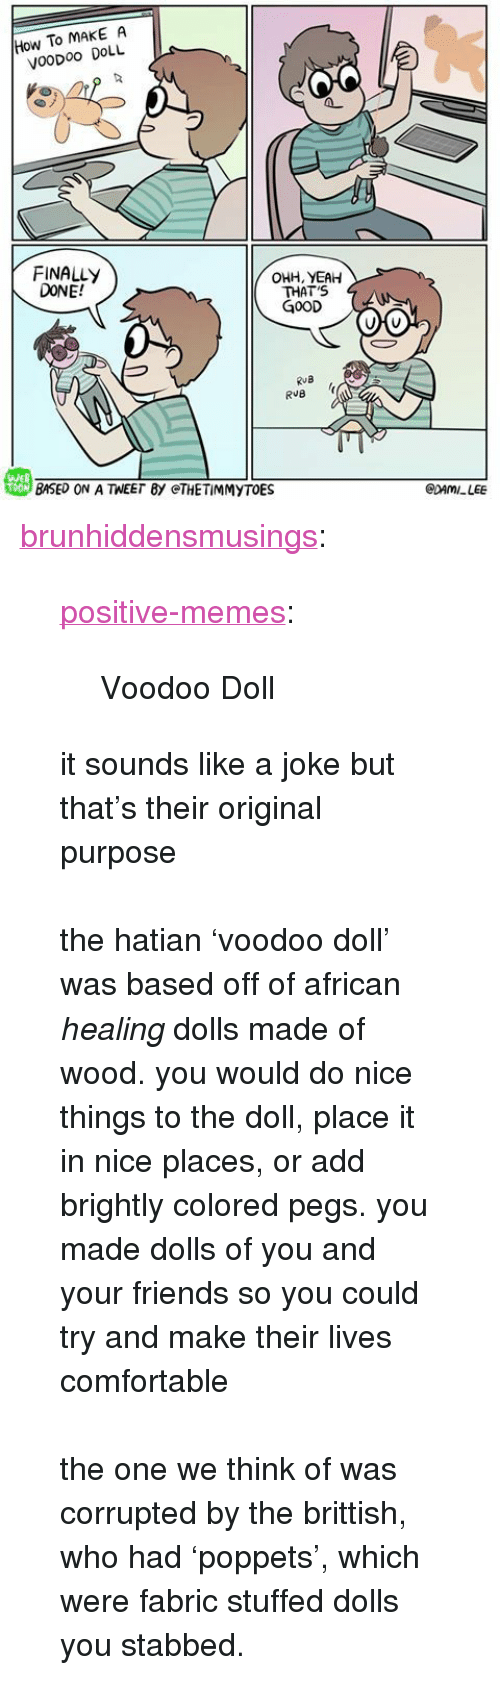 "Comfortable, Friends, and Memes: How To MAKE A  VooDoo DOLL  FINALLY  DONE!  OHH, YEAH  THAT'S  G0OD  RuB  戀BASED ON A TEE「BY @THE TİMMYTOE  WEB  CDAMILEE <p><a href=""https://brunhiddensmusings.tumblr.com/post/161667691330/positive-memes-voodoo-doll-it-sounds-like-a-joke"" class=""tumblr_blog"">brunhiddensmusings</a>:</p><blockquote> <p><a href=""https://positive-memes.tumblr.com/post/161665755470/voodoo-doll"" class=""tumblr_blog"">positive-memes</a>:</p> <blockquote><p>Voodoo Doll</p></blockquote> <p>it sounds like a joke but that's their original purpose<br/><br/>the hatian 'voodoo doll' was based off of african <i>healing </i>dolls made of wood. you would do nice things to the doll, place it in nice places, or add brightly colored pegs. you made dolls of you and your friends so you could try and make their lives comfortable<br/><br/>the one we think of was corrupted by the brittish, who had 'poppets', which were fabric stuffed dolls you stabbed. <br/></p> </blockquote>"